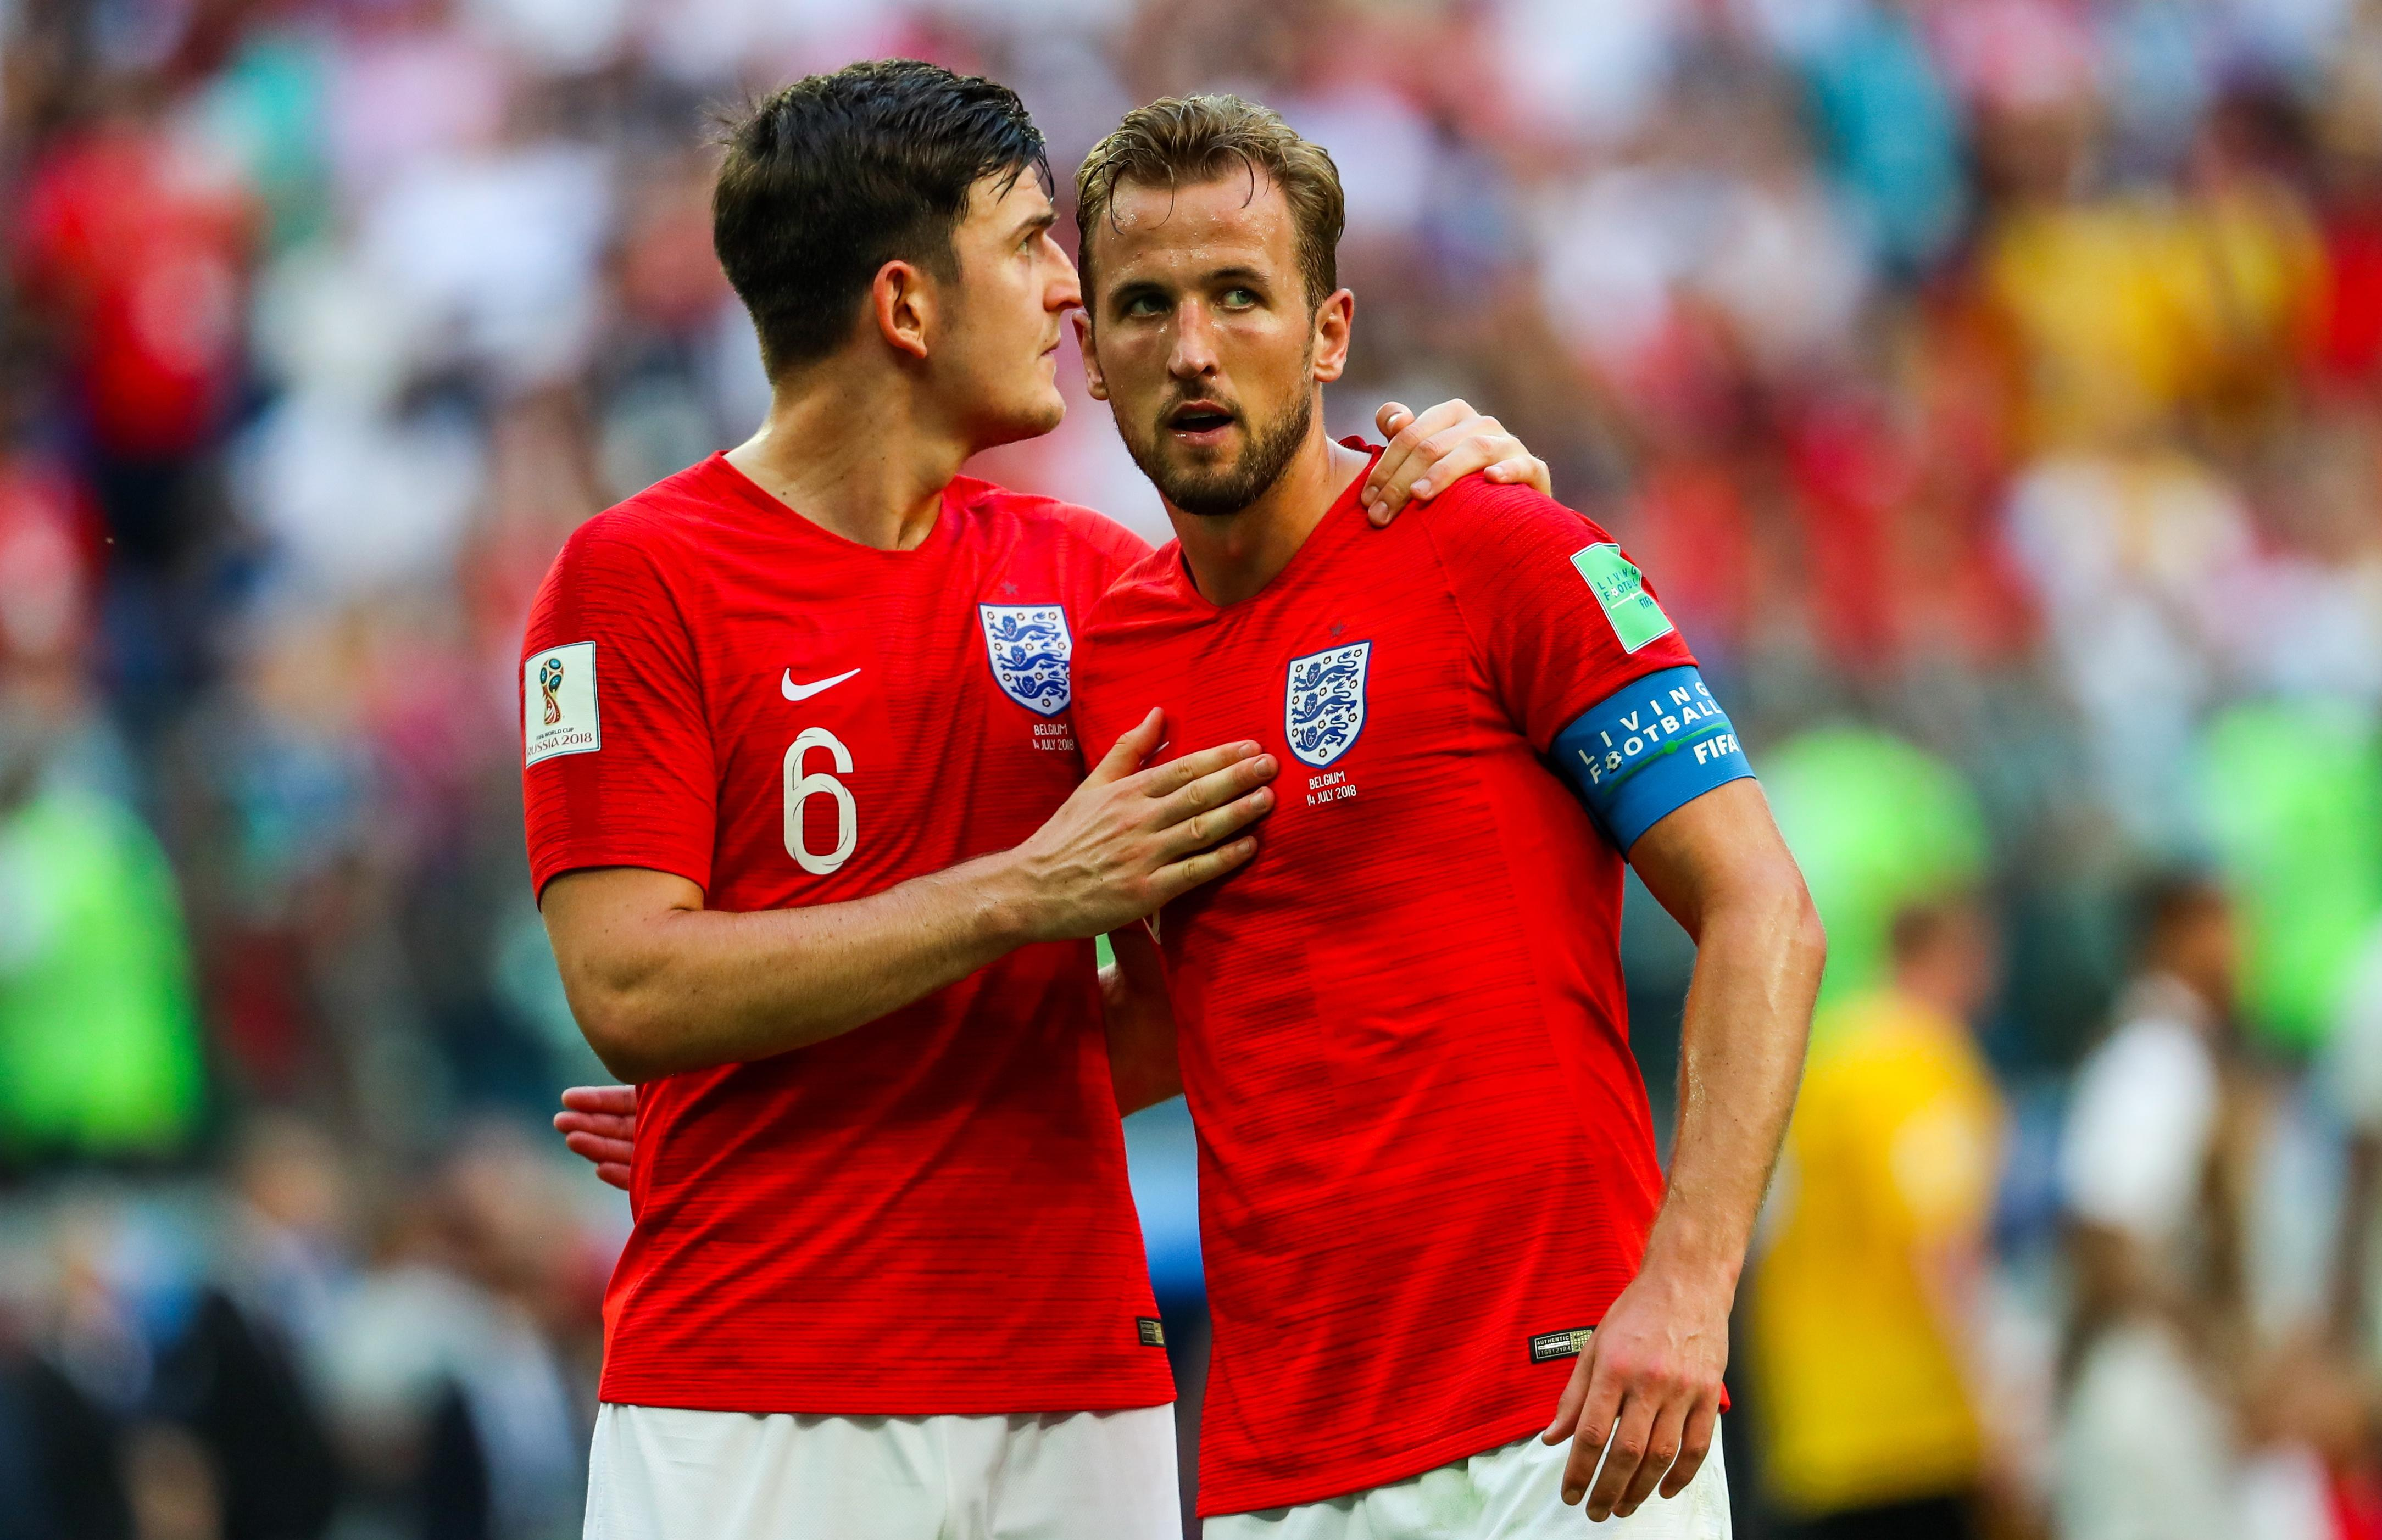 ST PETERSBURG, RUSSIA - JULY 14, 2018: England's Harry Maguire (L) and Harry Kane after losing the 2018 FIFA World Cup Play-off for third place match against Belgium at St Petersburg Stadium. Belgium won the game 2-0. Sergei Savostyanov/TASS (Photo by Sergei Savostyanov\TASS via Getty Images)